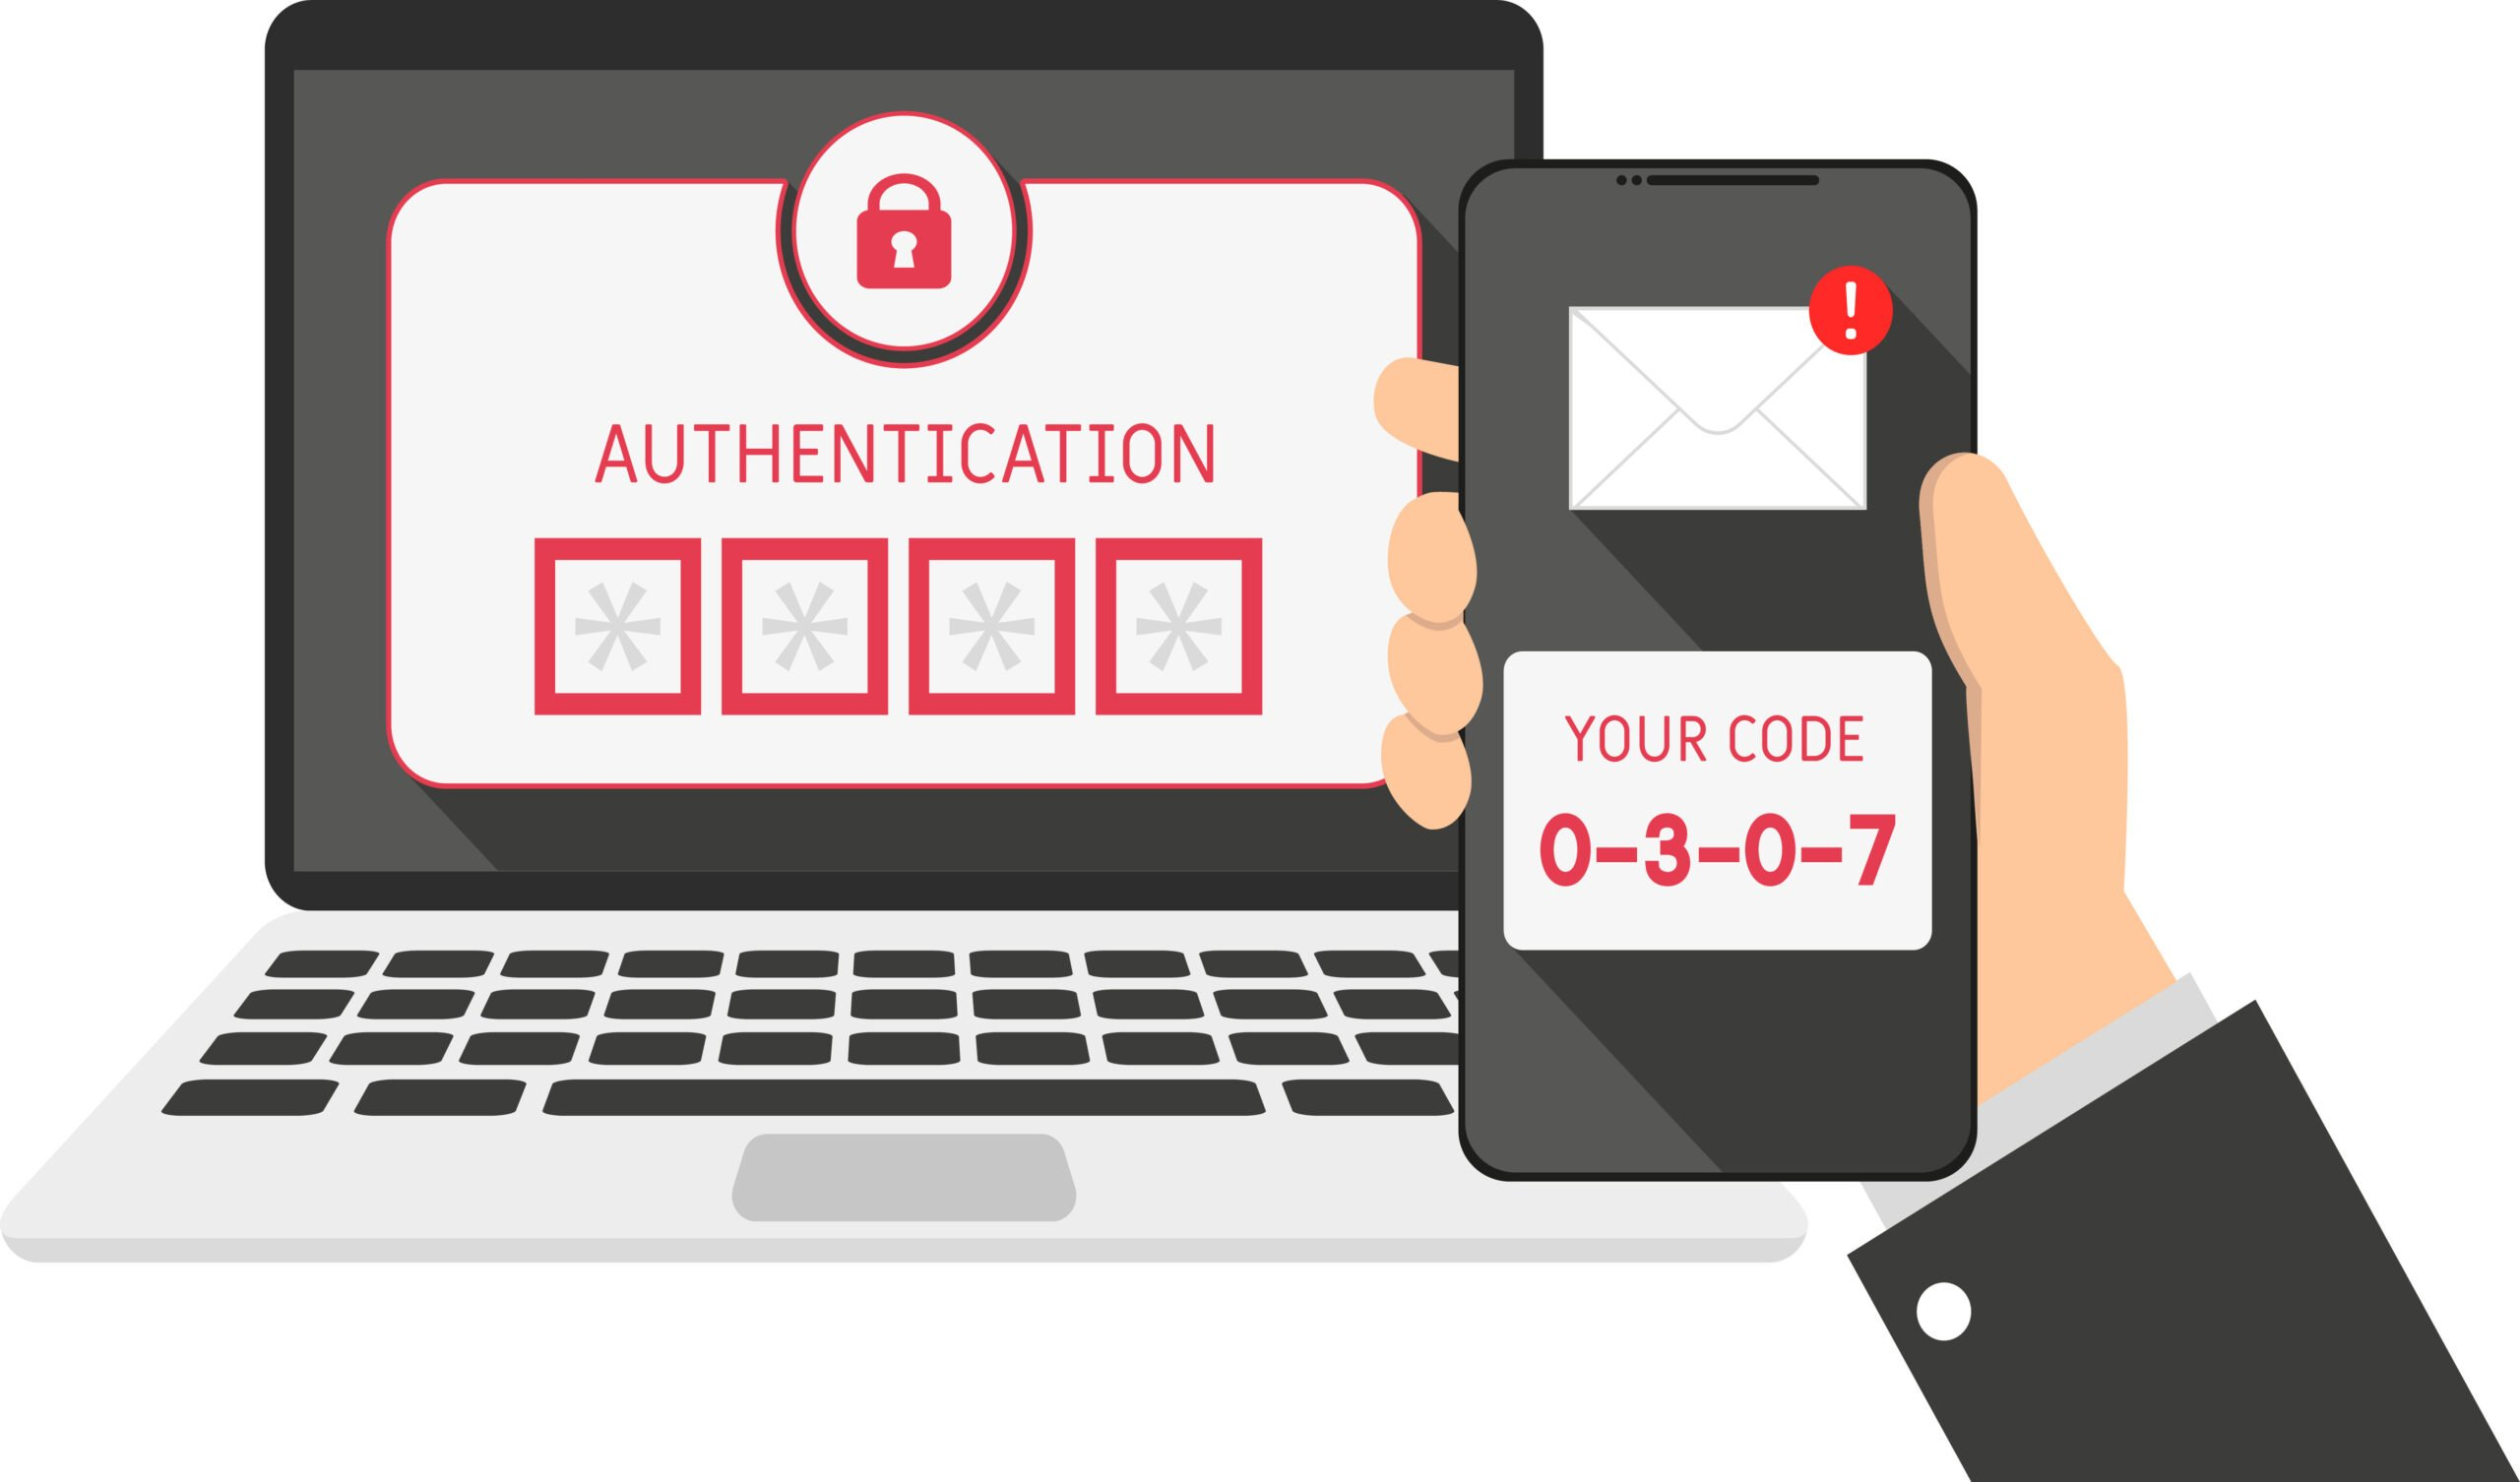 Double up your login protection with multi-factor authentication